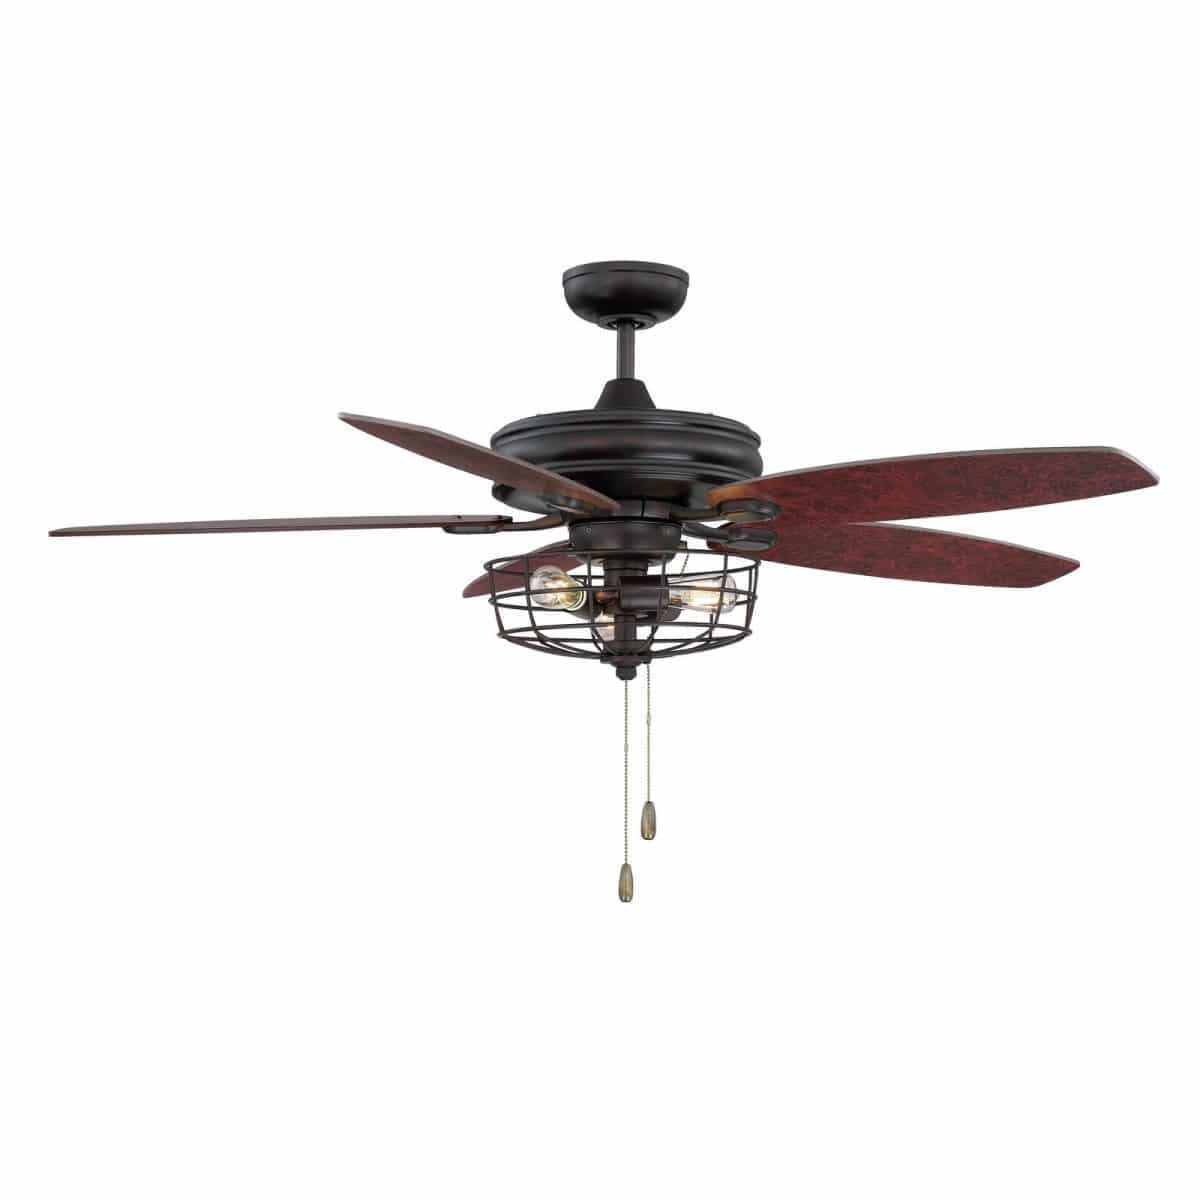 "Affordable farmhouse ceiling fans 52"" Glenpool 5 blade ceiling fan metal rustic light"